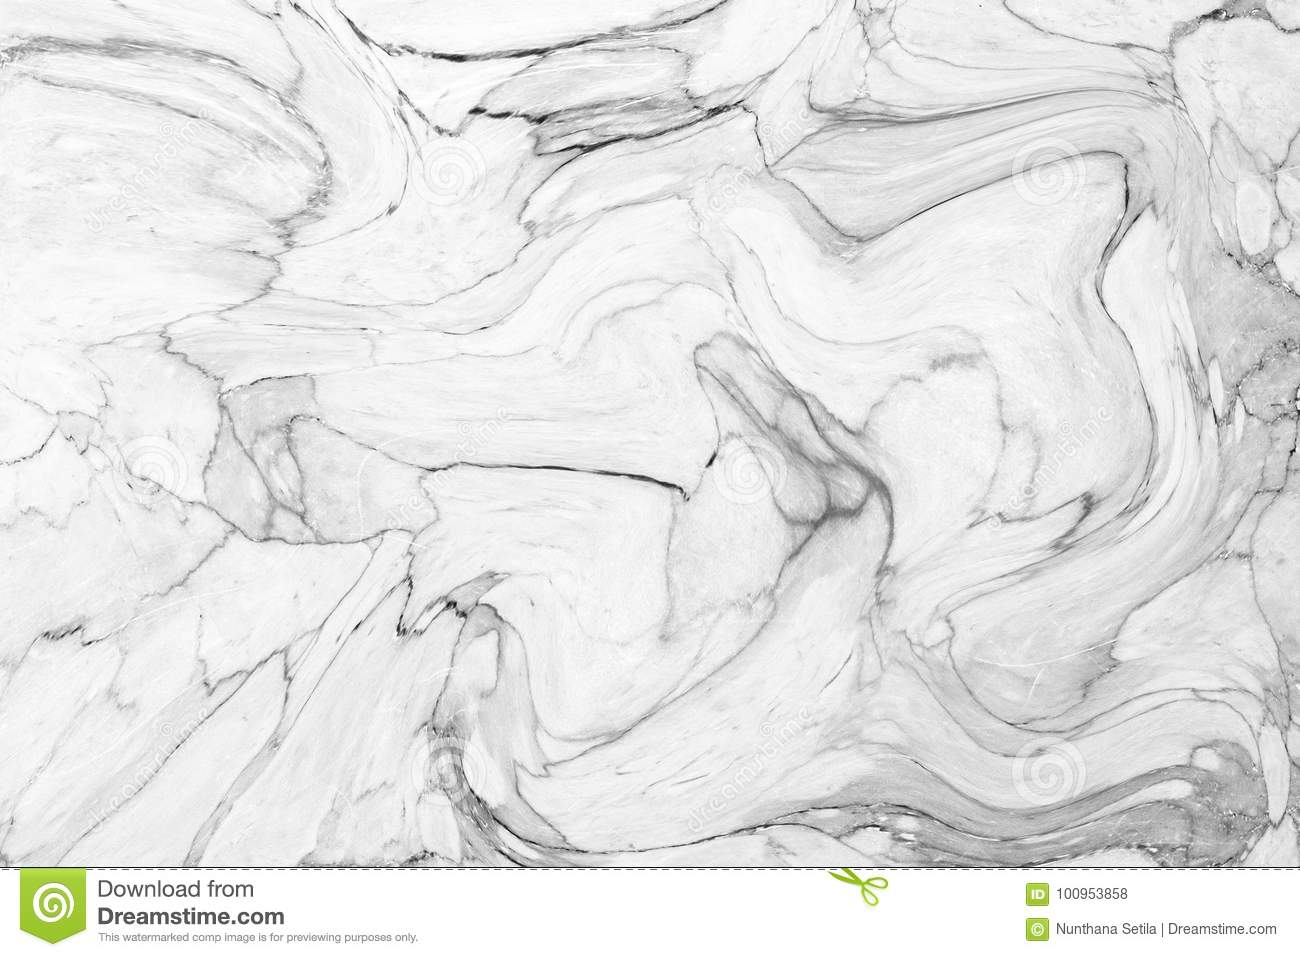 Abstract acrylic wave pattern, White marble ink texture background for wallpaper or skin wall tile for interior design. High